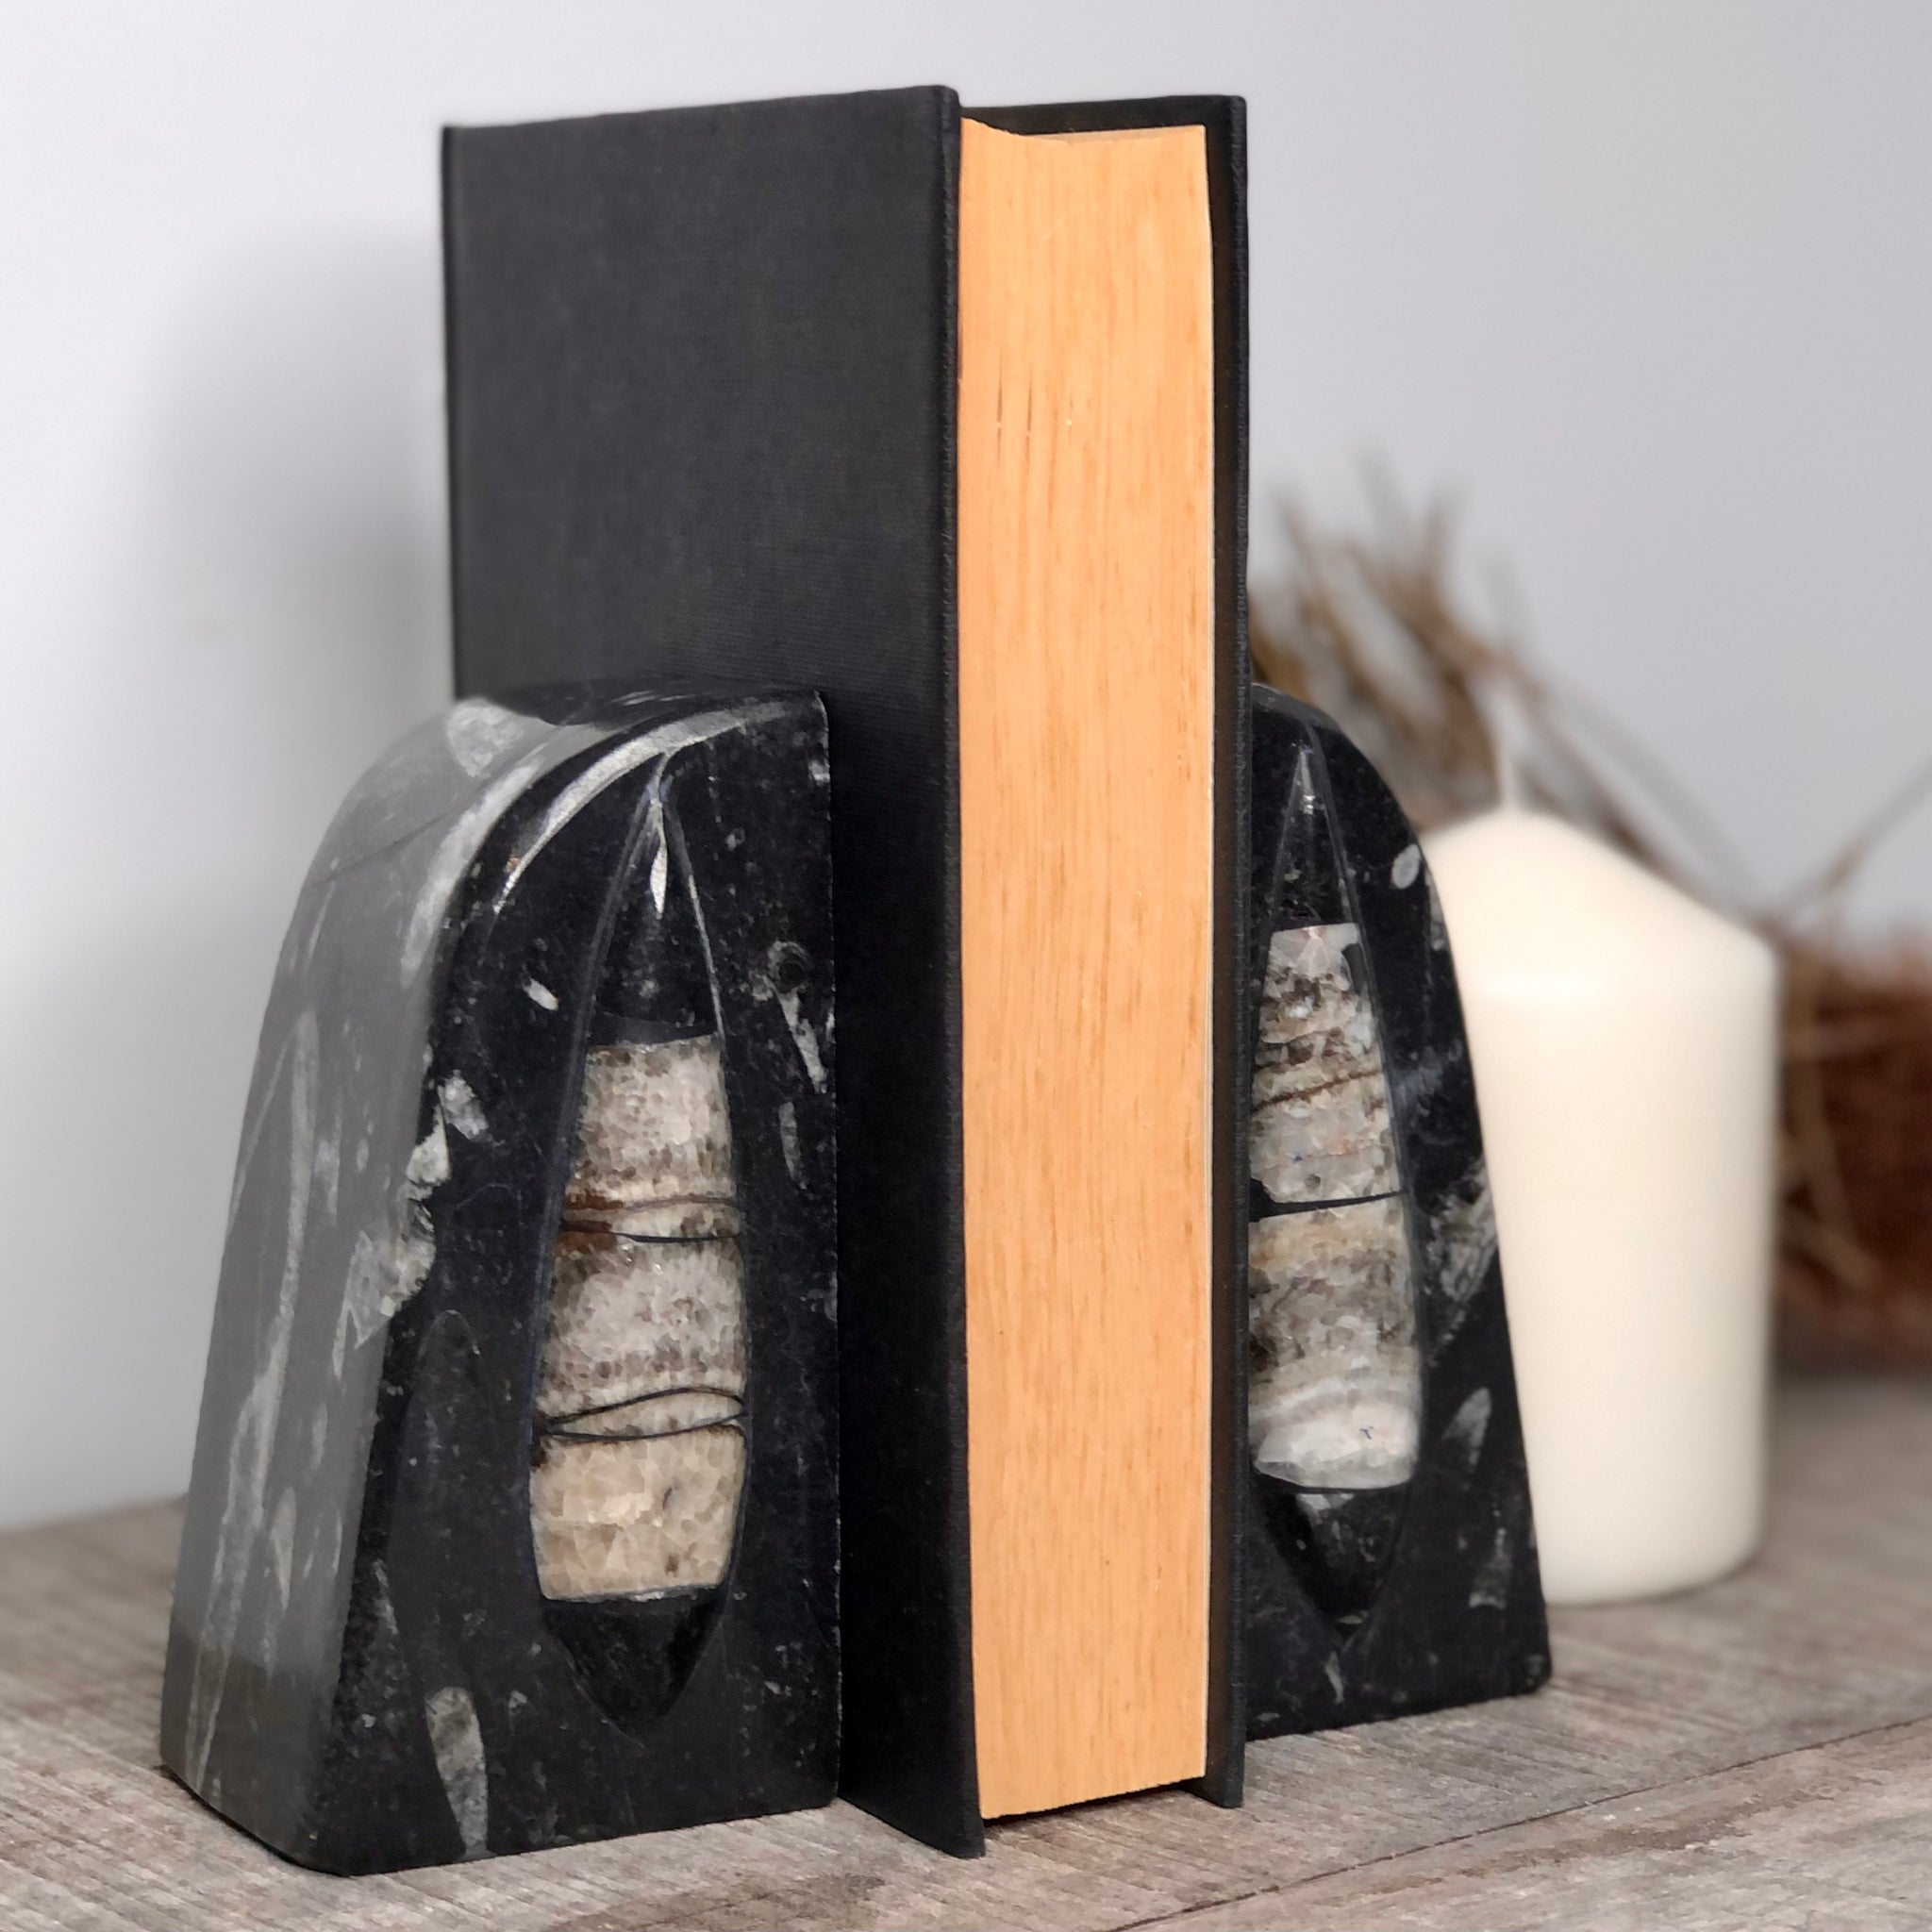 Gift, decor and crystal shop Australia: Fossil marble bookend pair 1.7kg